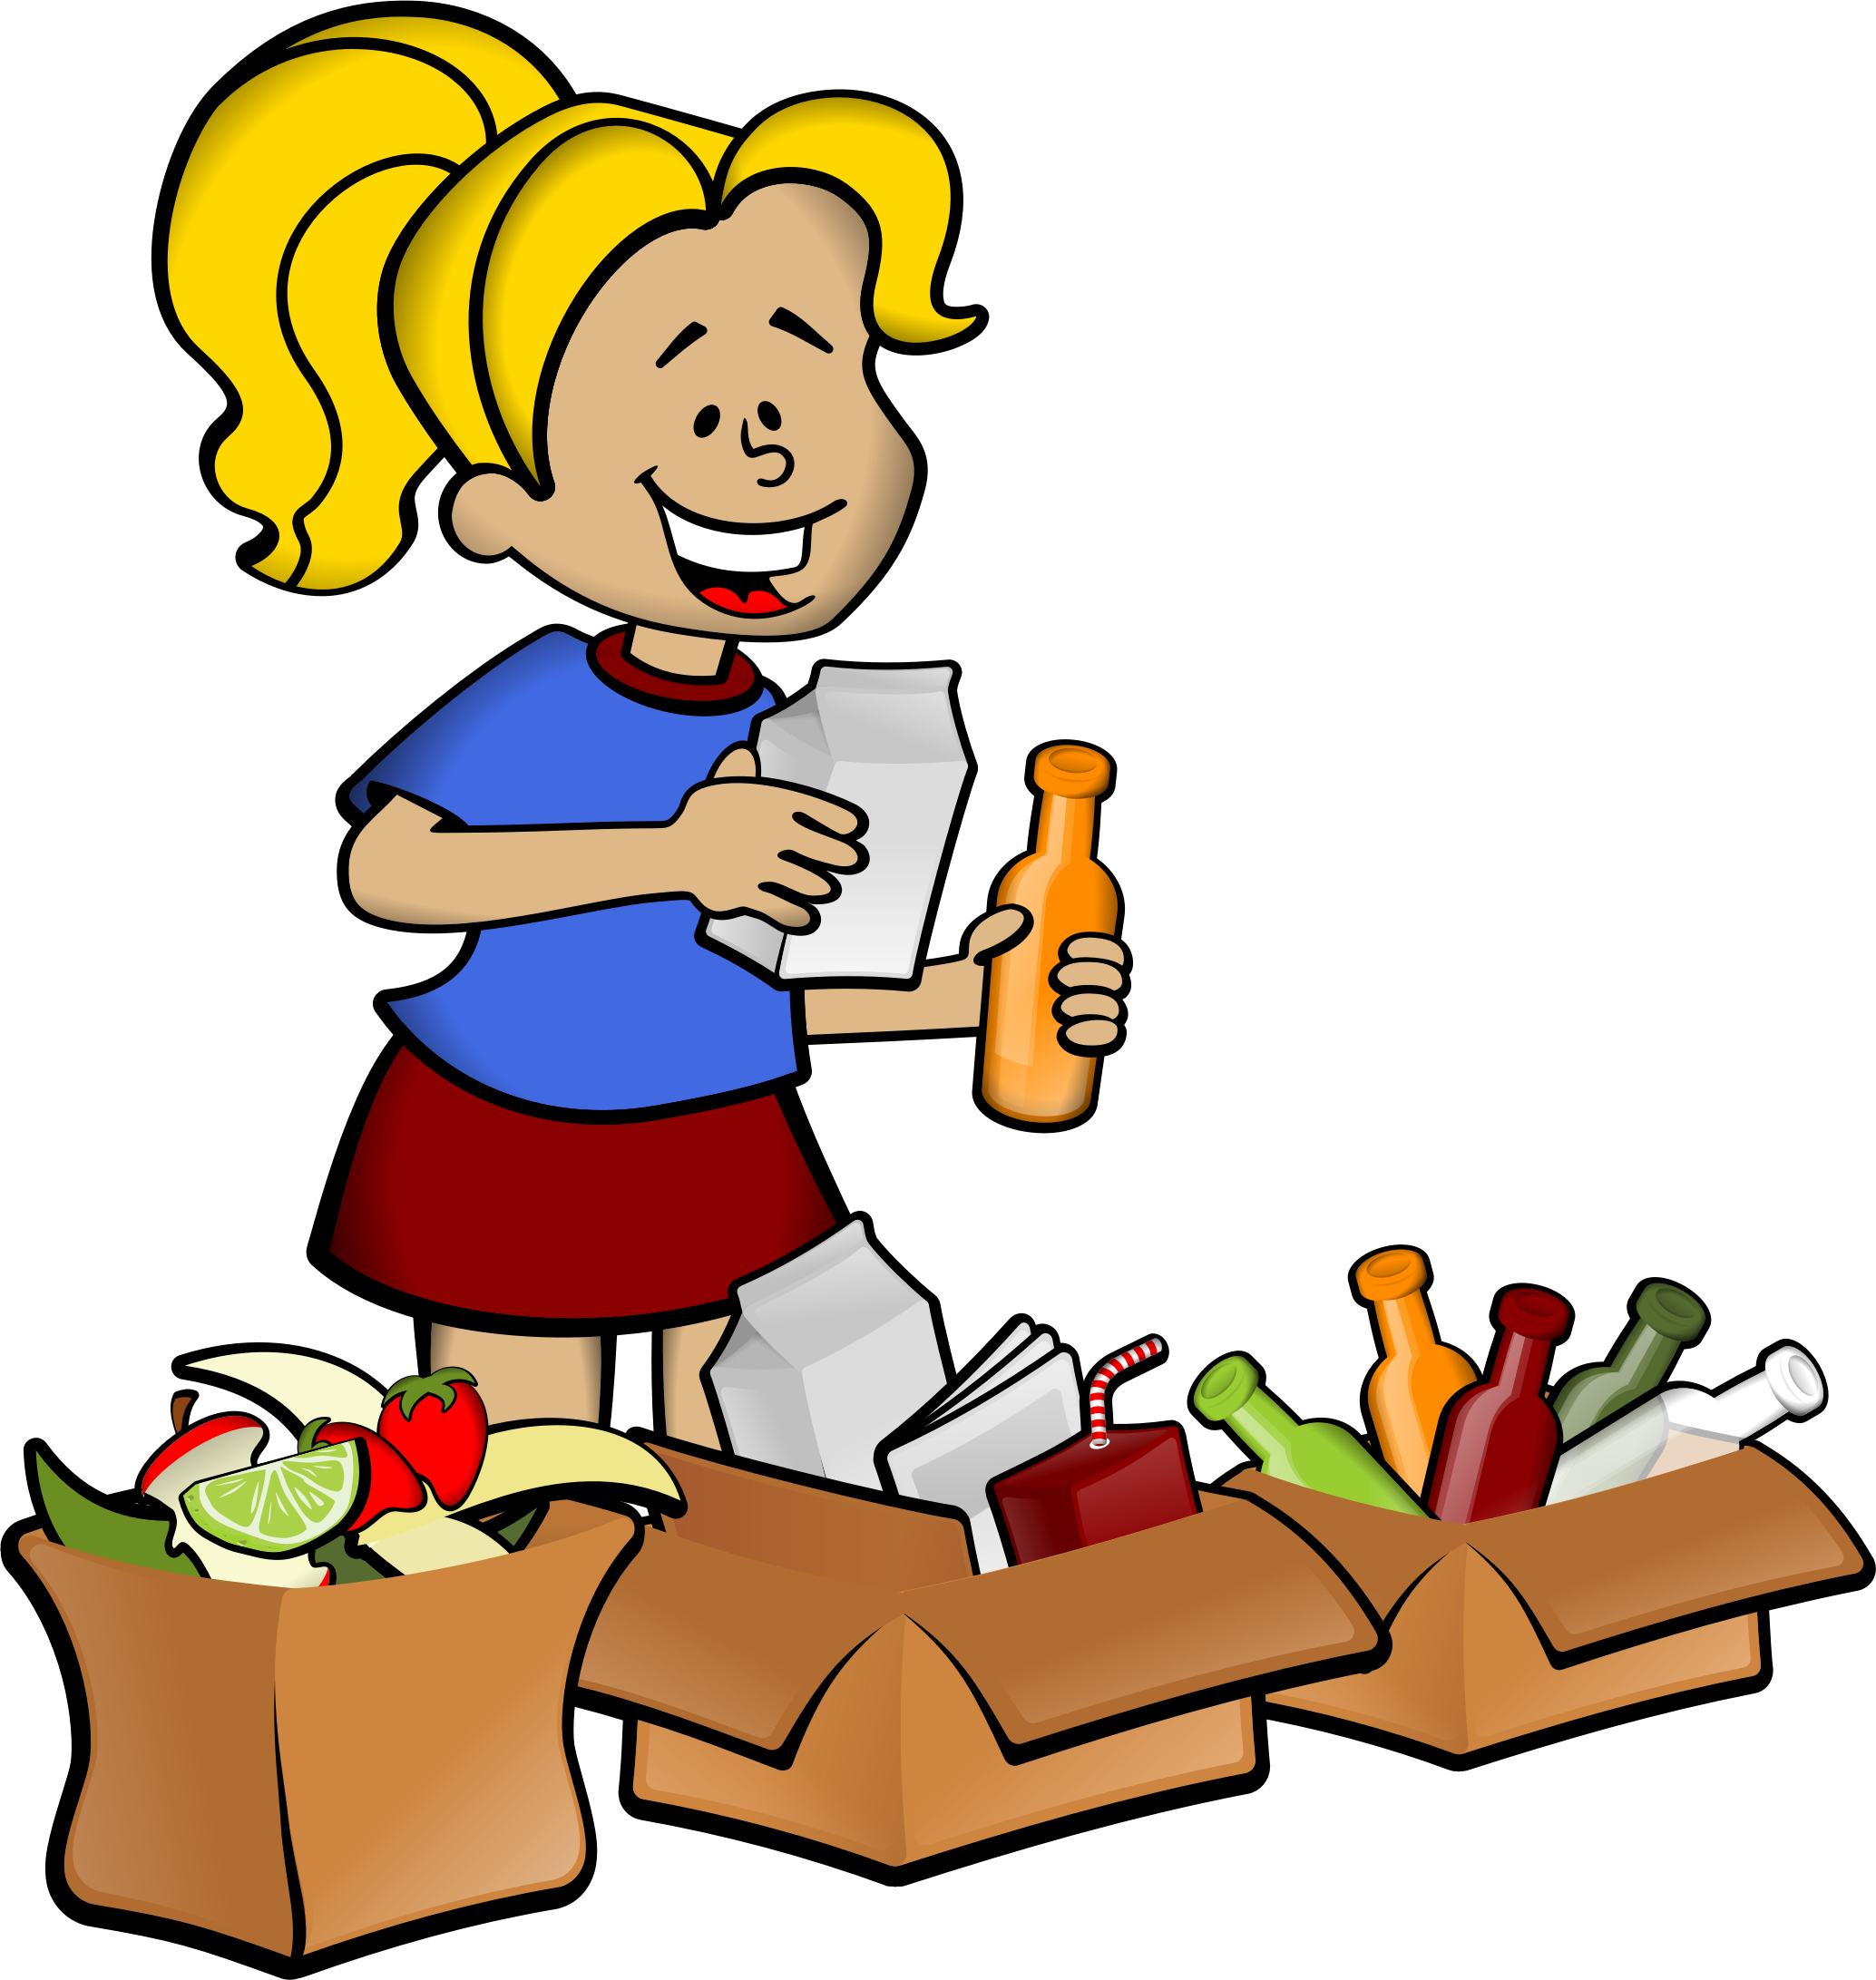 Woman and boxes big. Garbage clipart cartoon